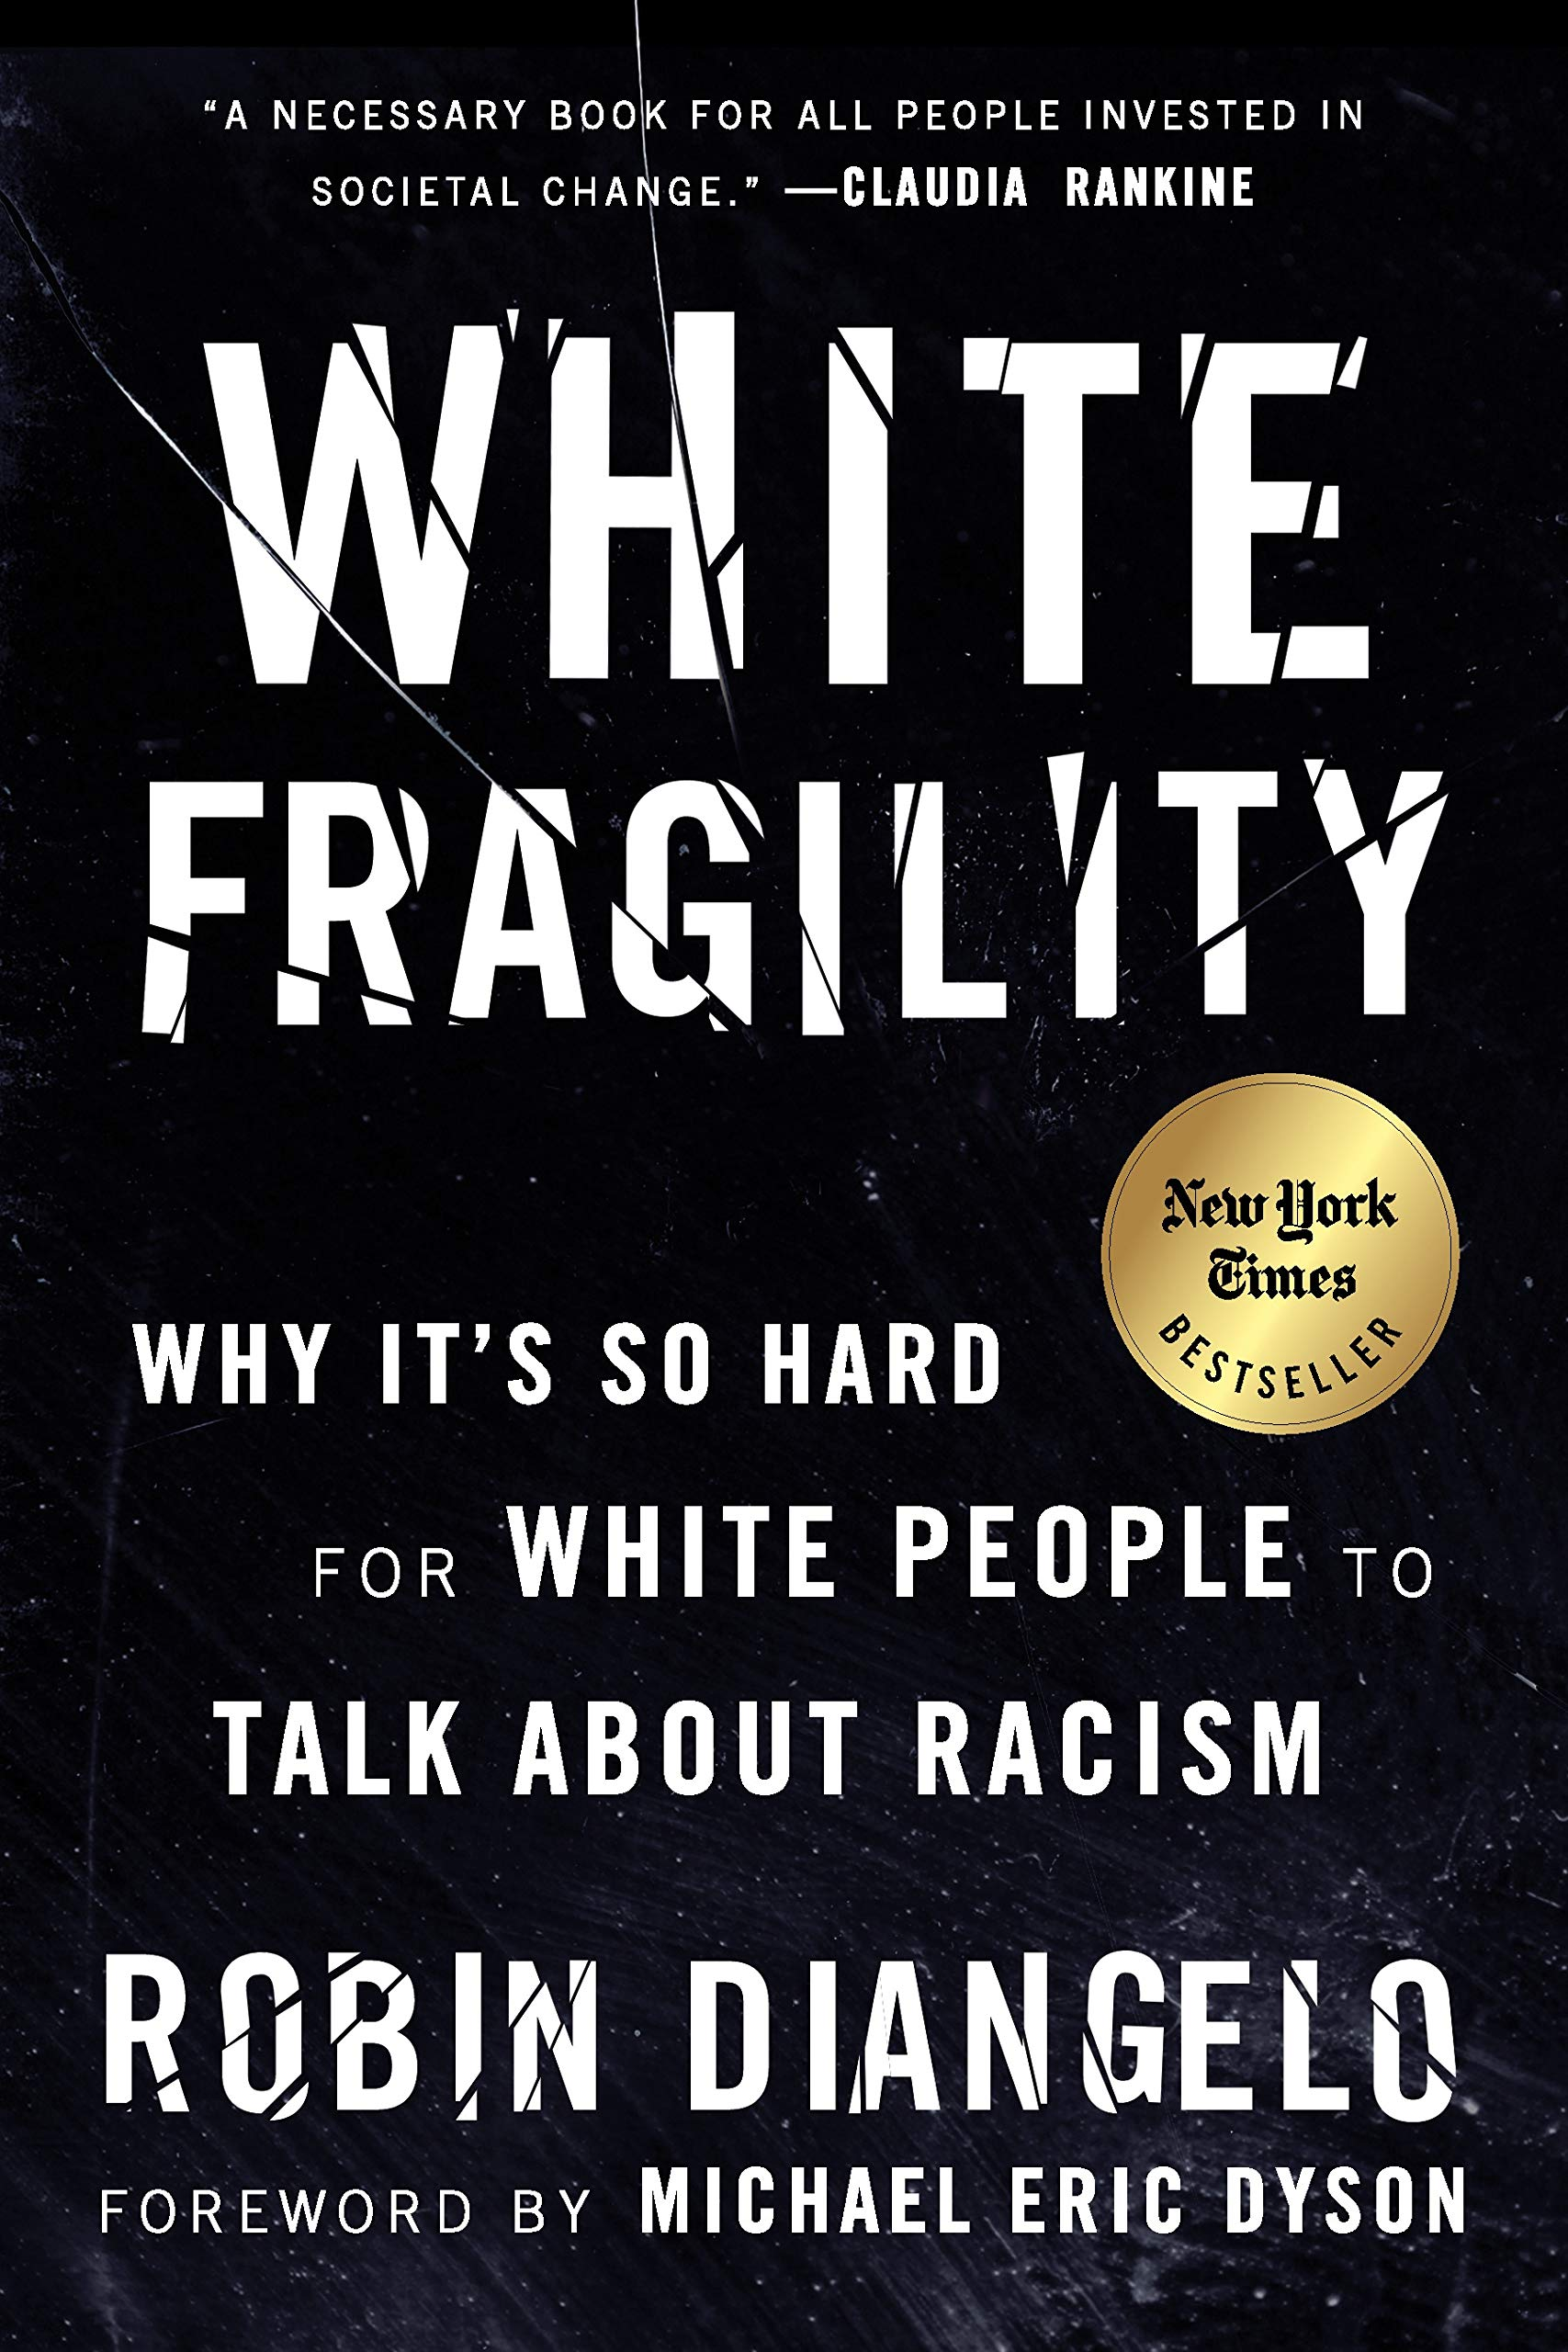 White Fragility: Why It's So Hard for White People to Talk About ...